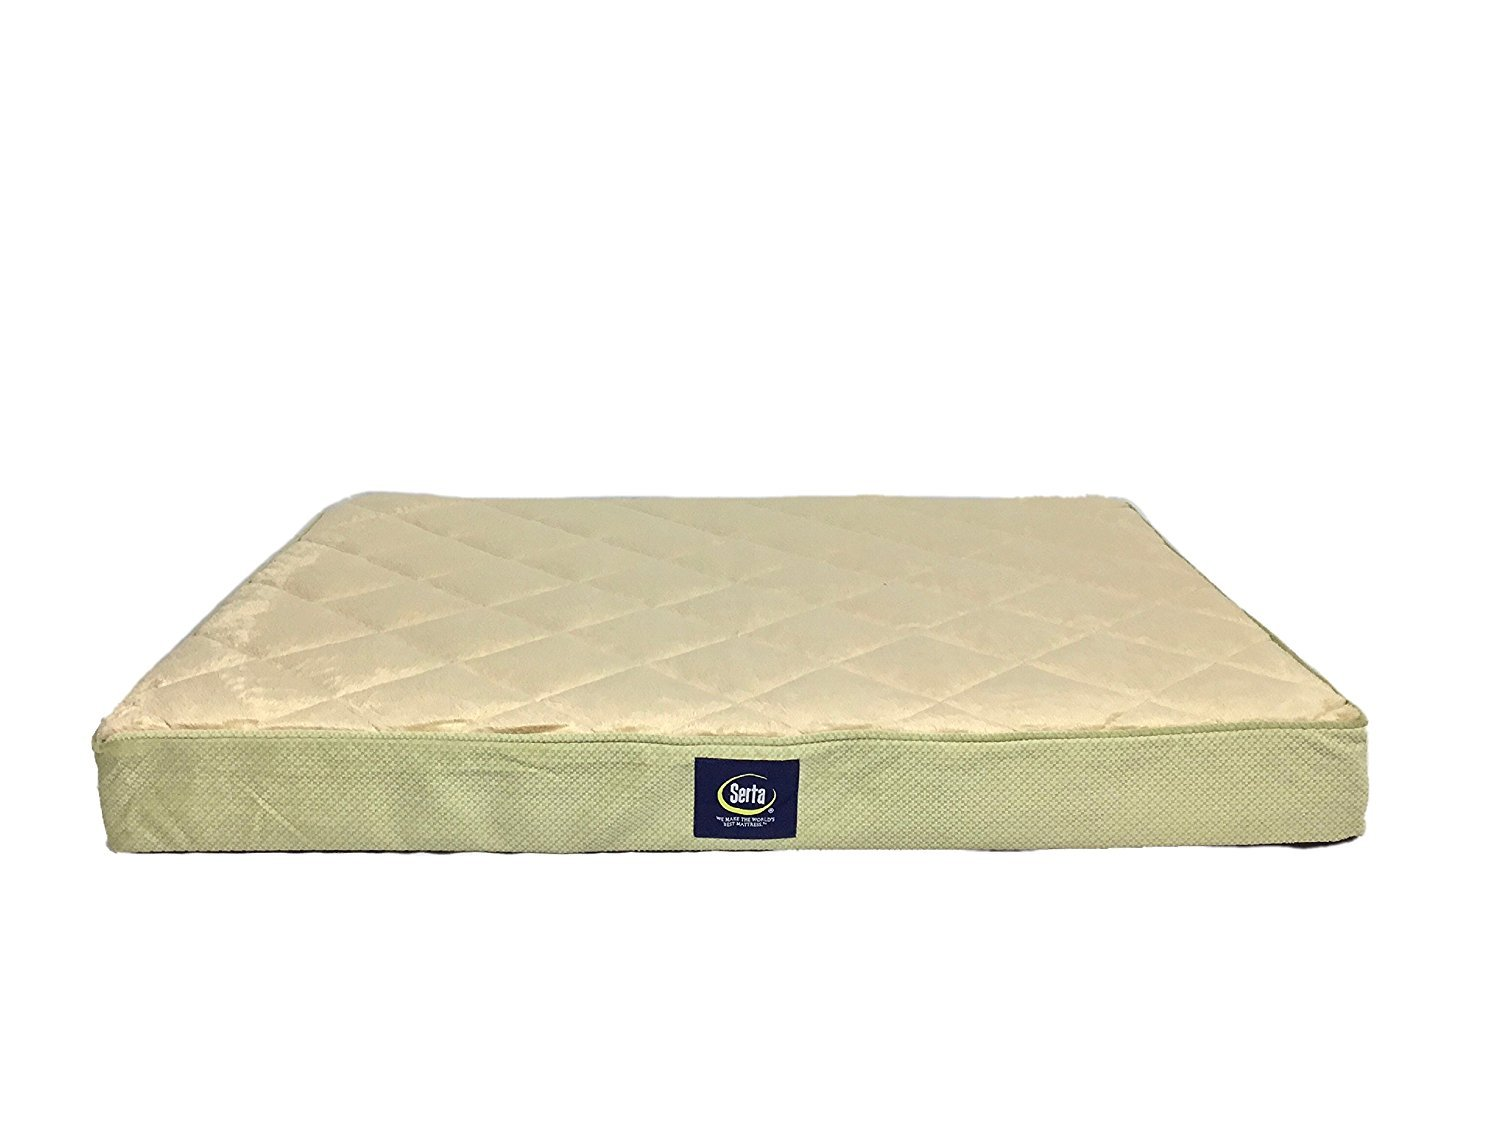 Serta Quilted Pillowtop Pet Bed Cover, Large, Sage - Replacement Cover Only by Serta (Image #1)